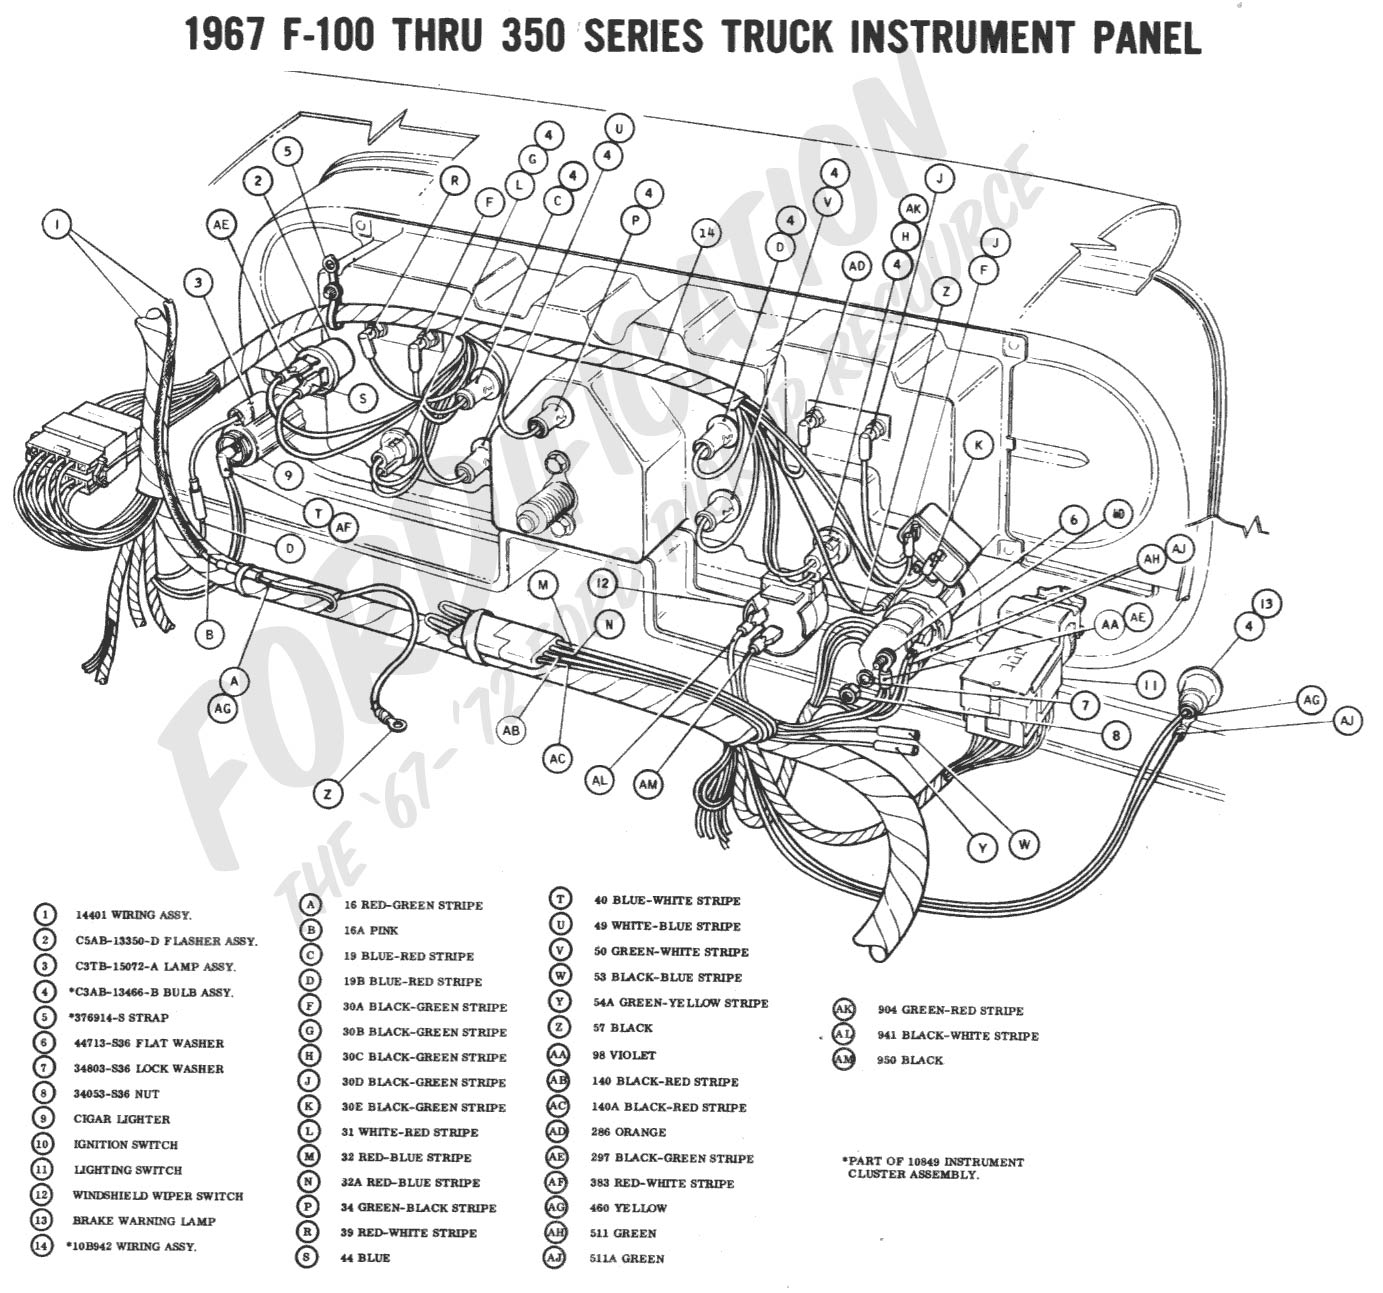 ford ignition switch wiring diagram with Schematics H on 2o0i2 2001 Ford Ranger 4x4 4x4 Will Not Engage Have Testet Fuses additionally Schematics h additionally 507443 1963 Ranchero Wiring Diagram Anyone Got One besides 1989 Ford F250 Wiring Diagram additionally Sonatas Bucket Sport Seats Wiring Diagrams.